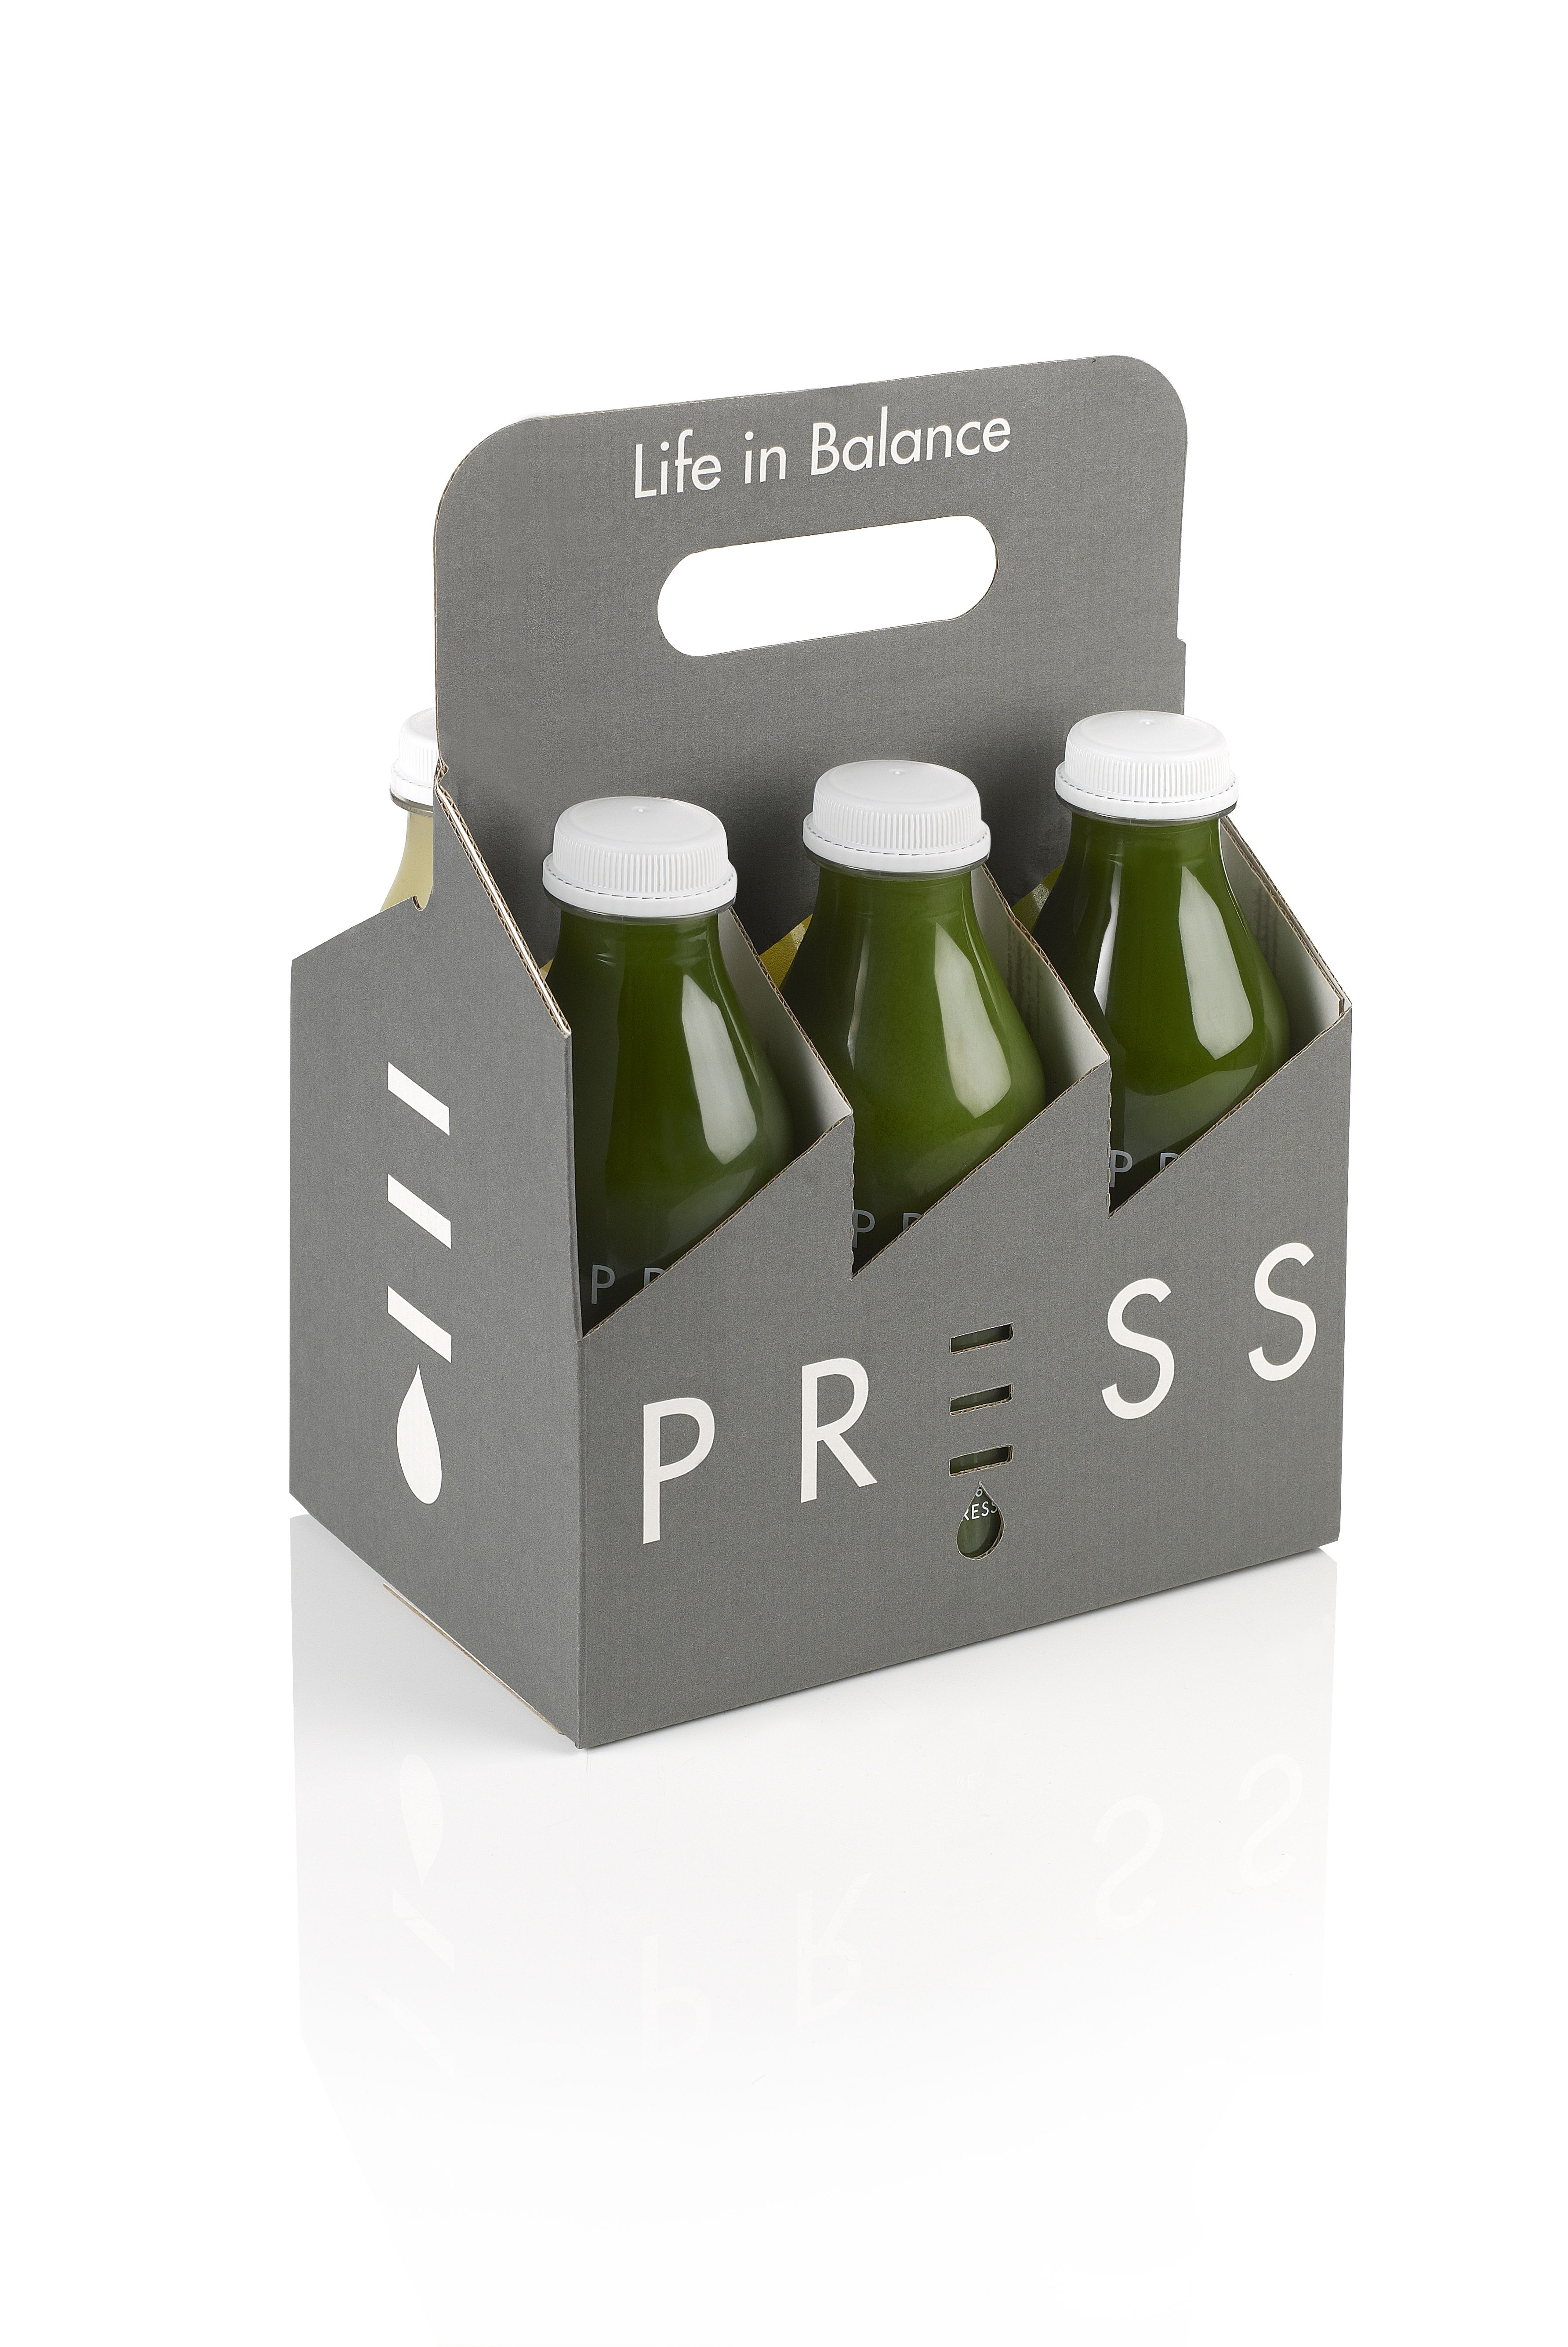 Press London View at www.thesourceinspires.com